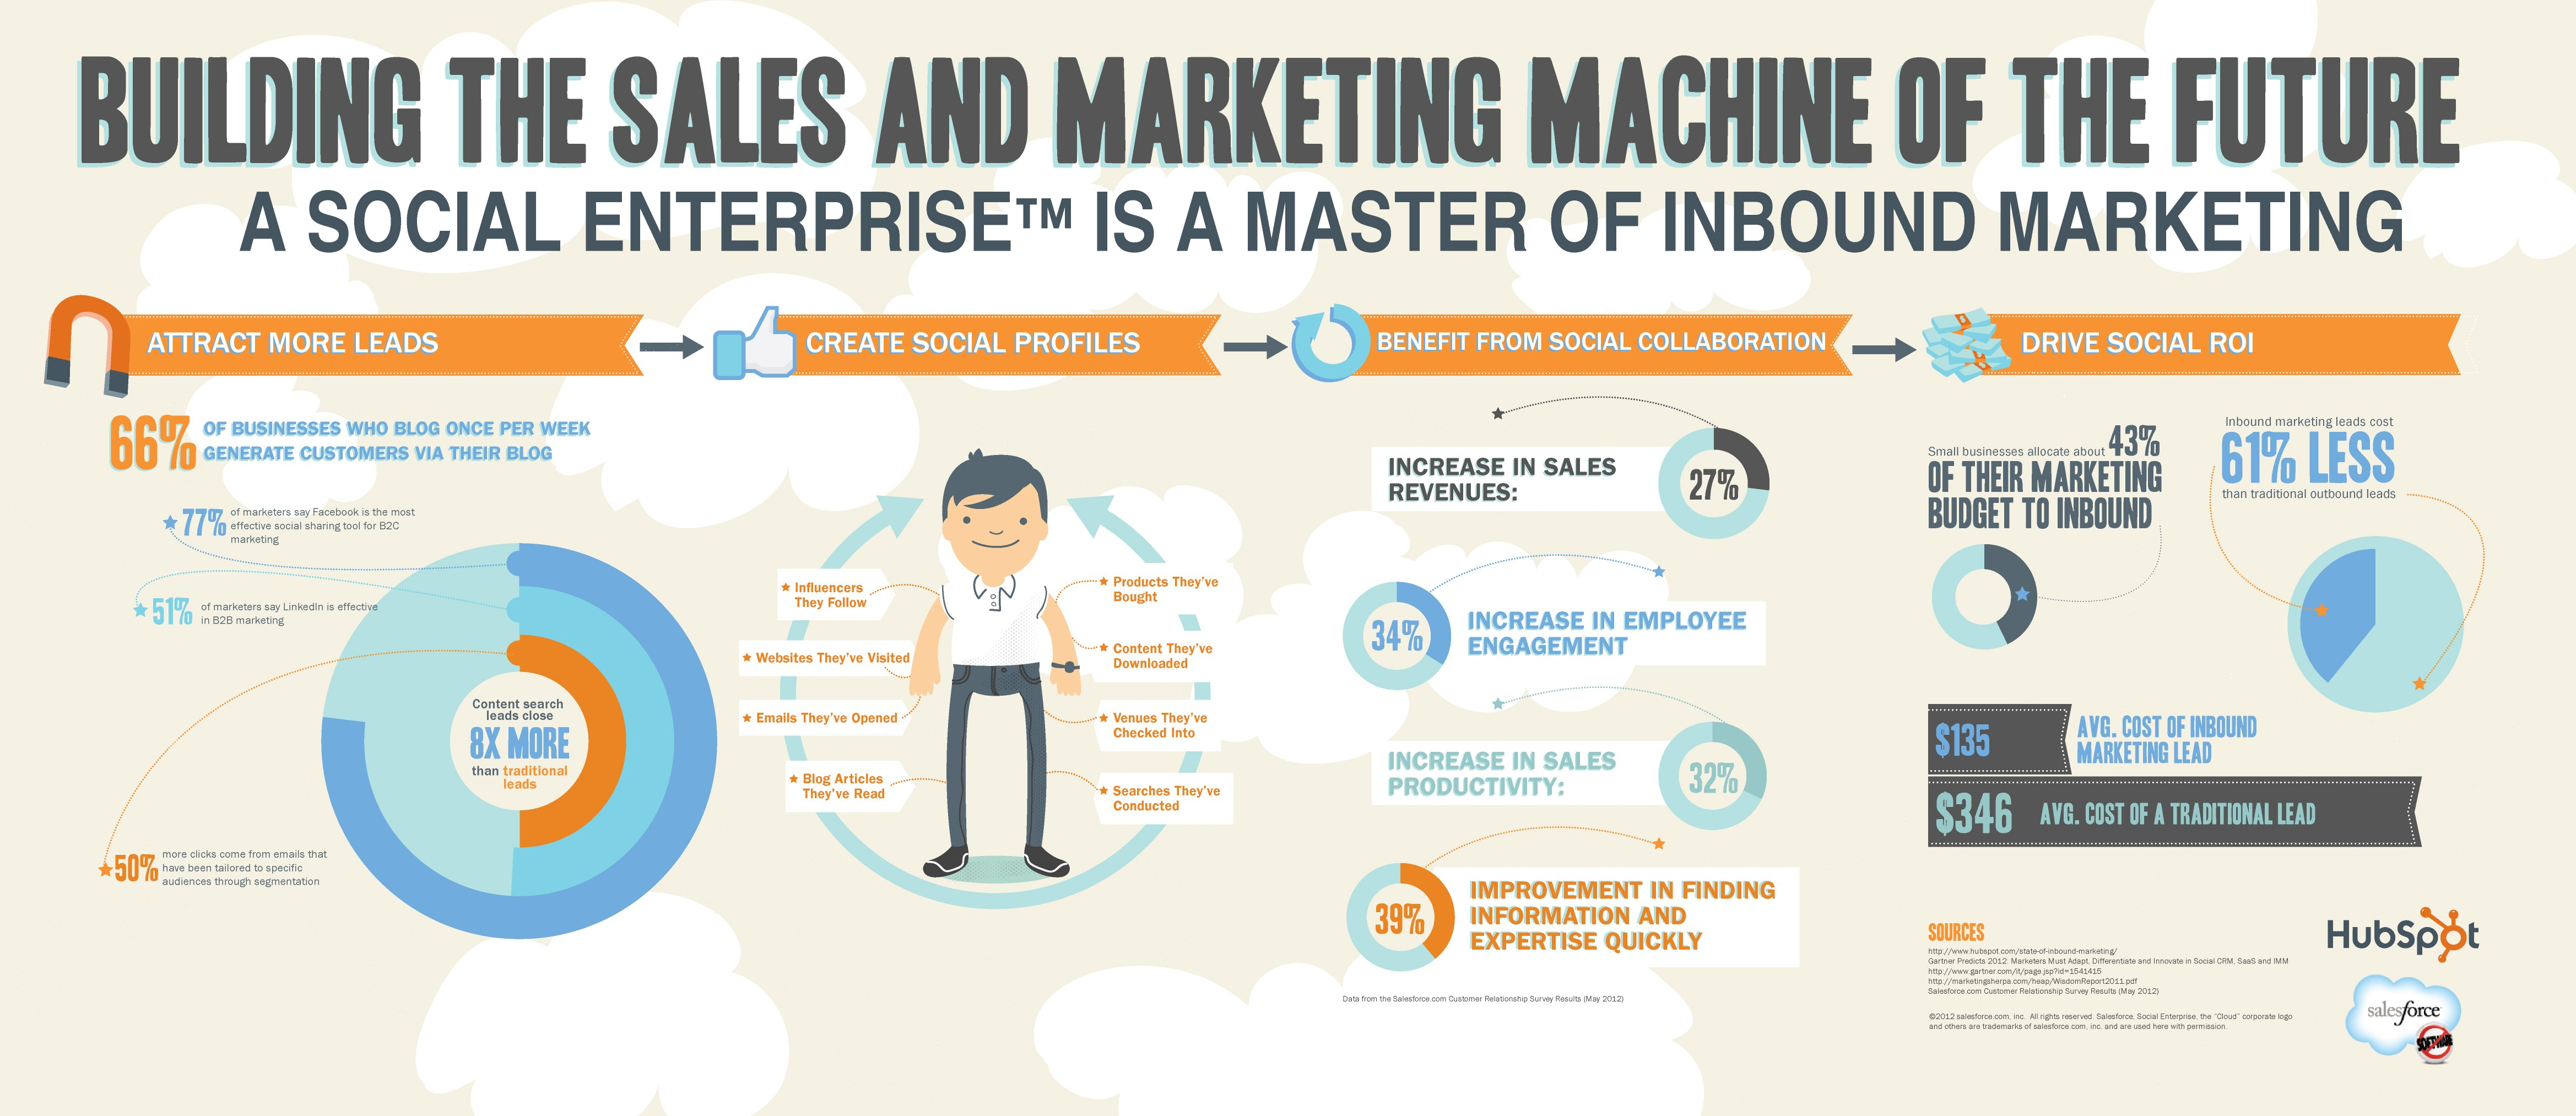 Building the Sales and Marketing Machine of the Future Infographic